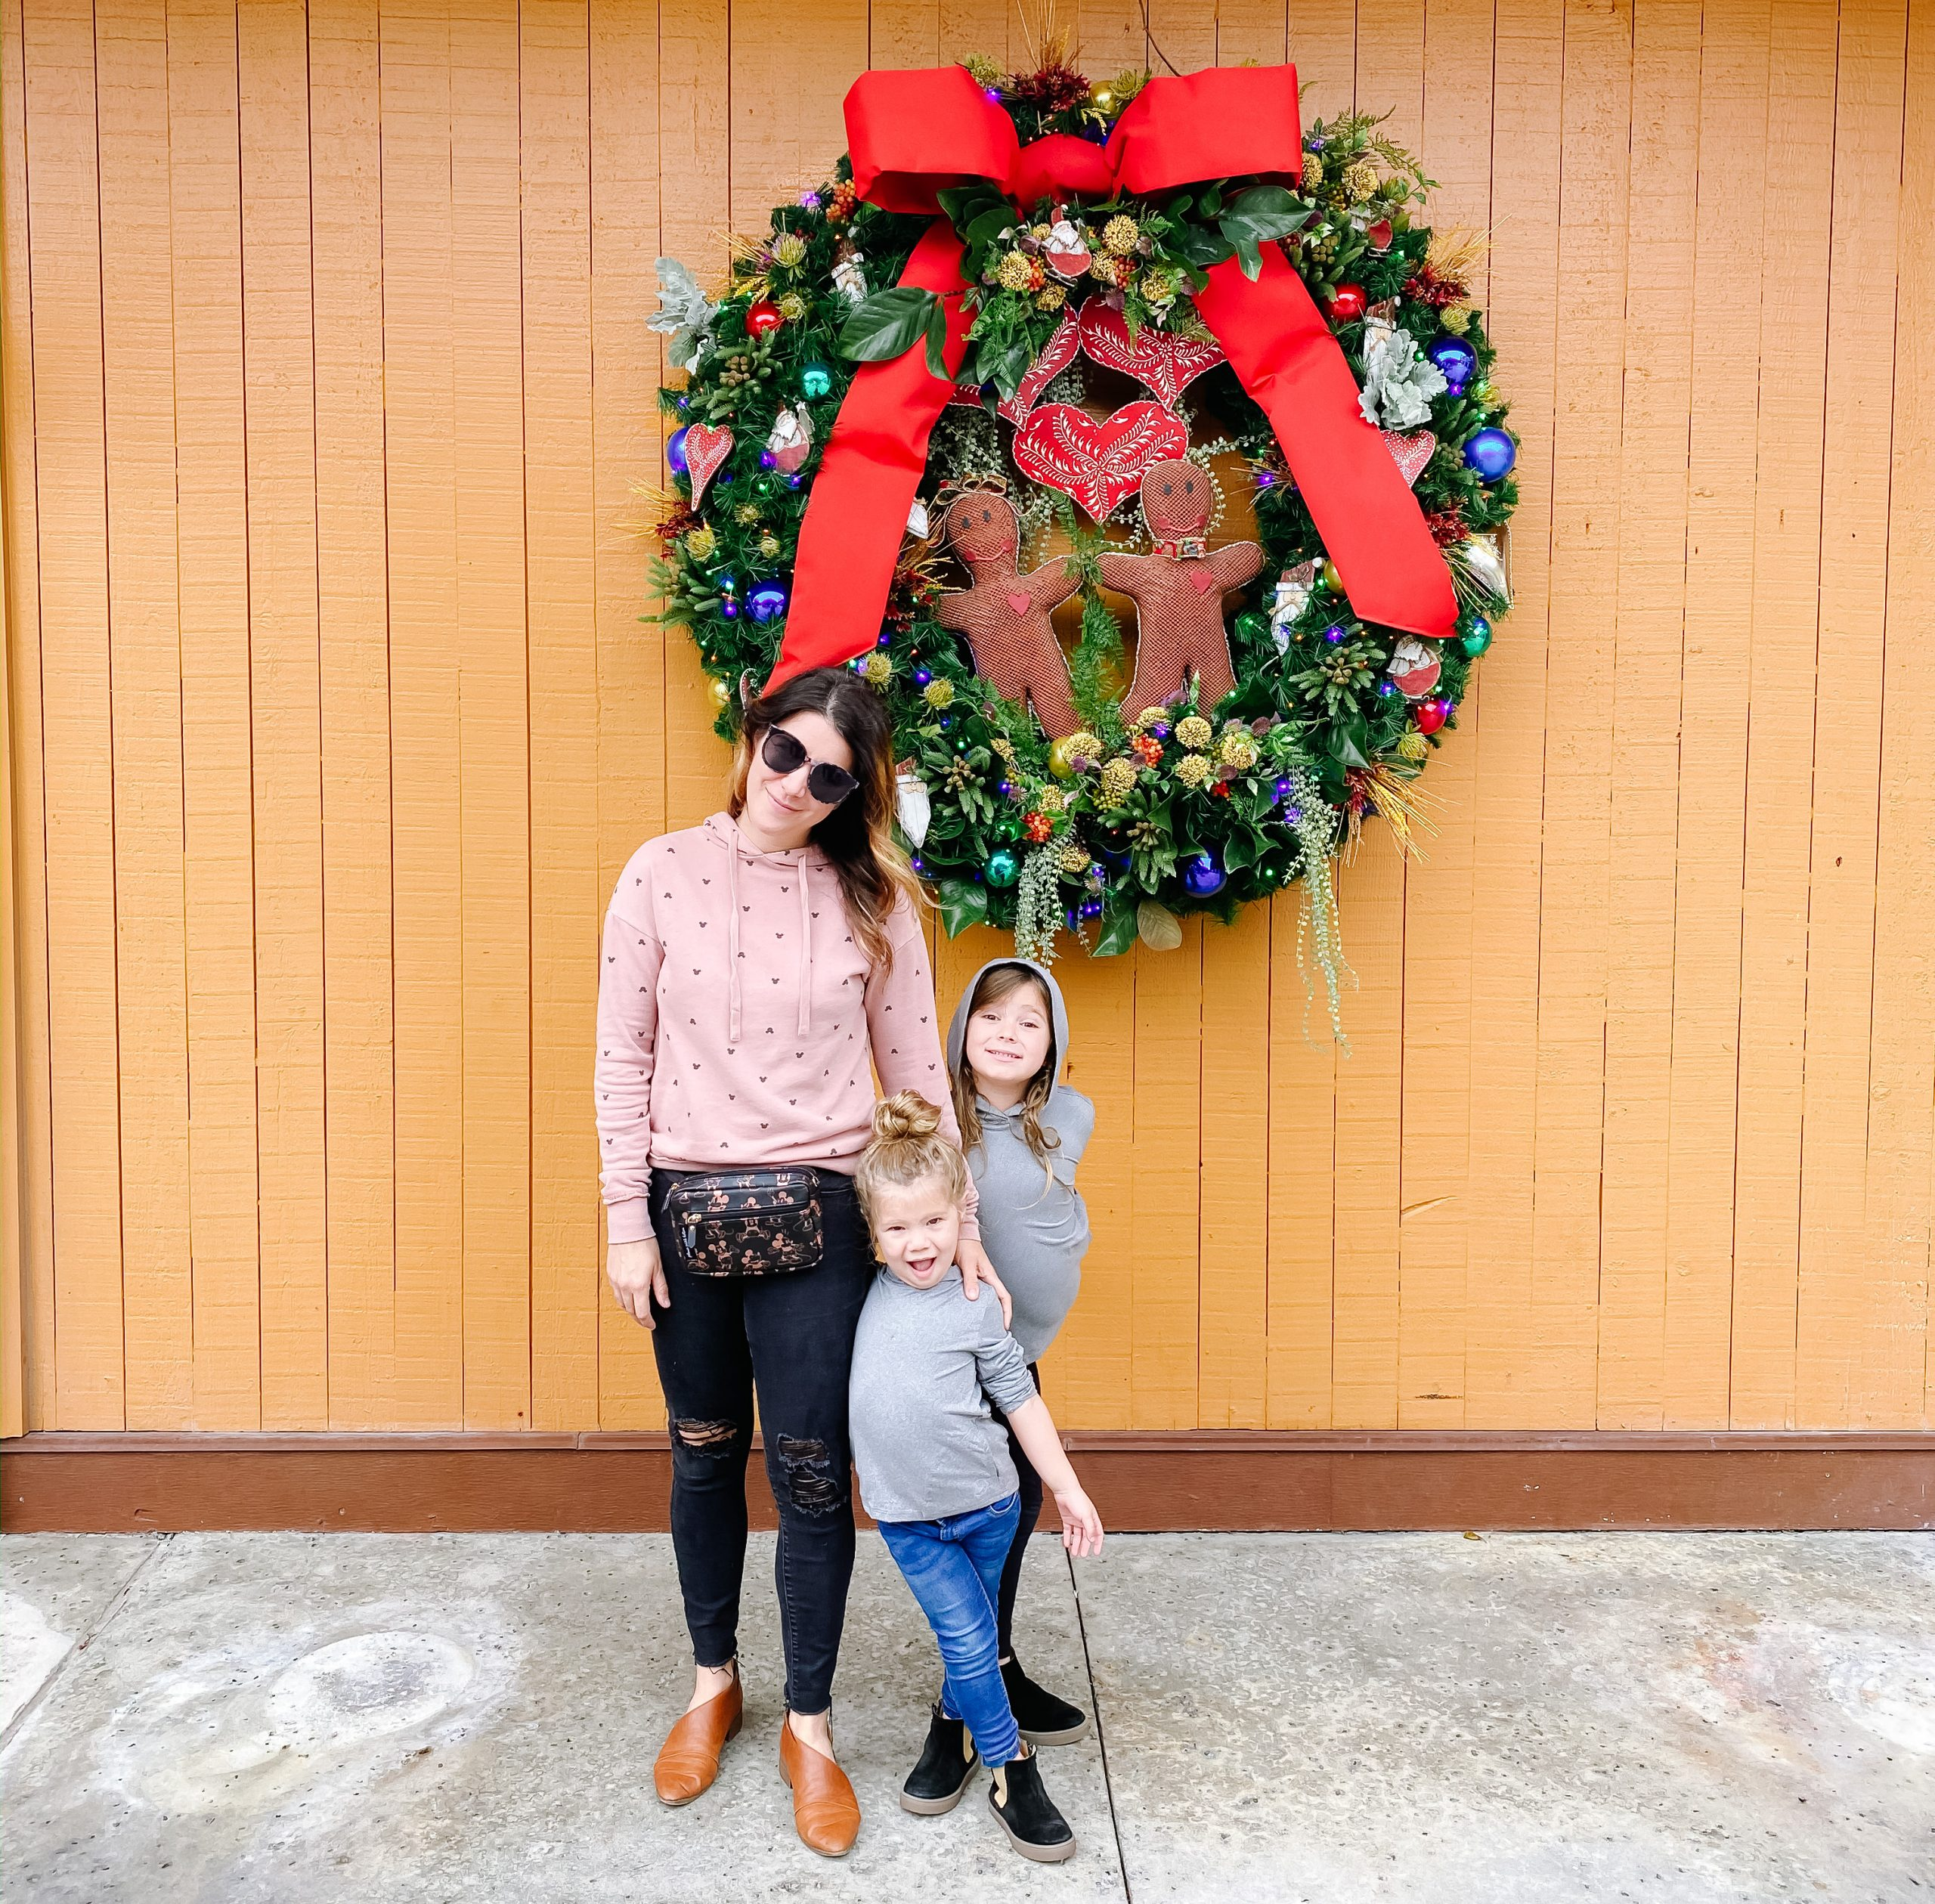 Christmas at Disney Springs